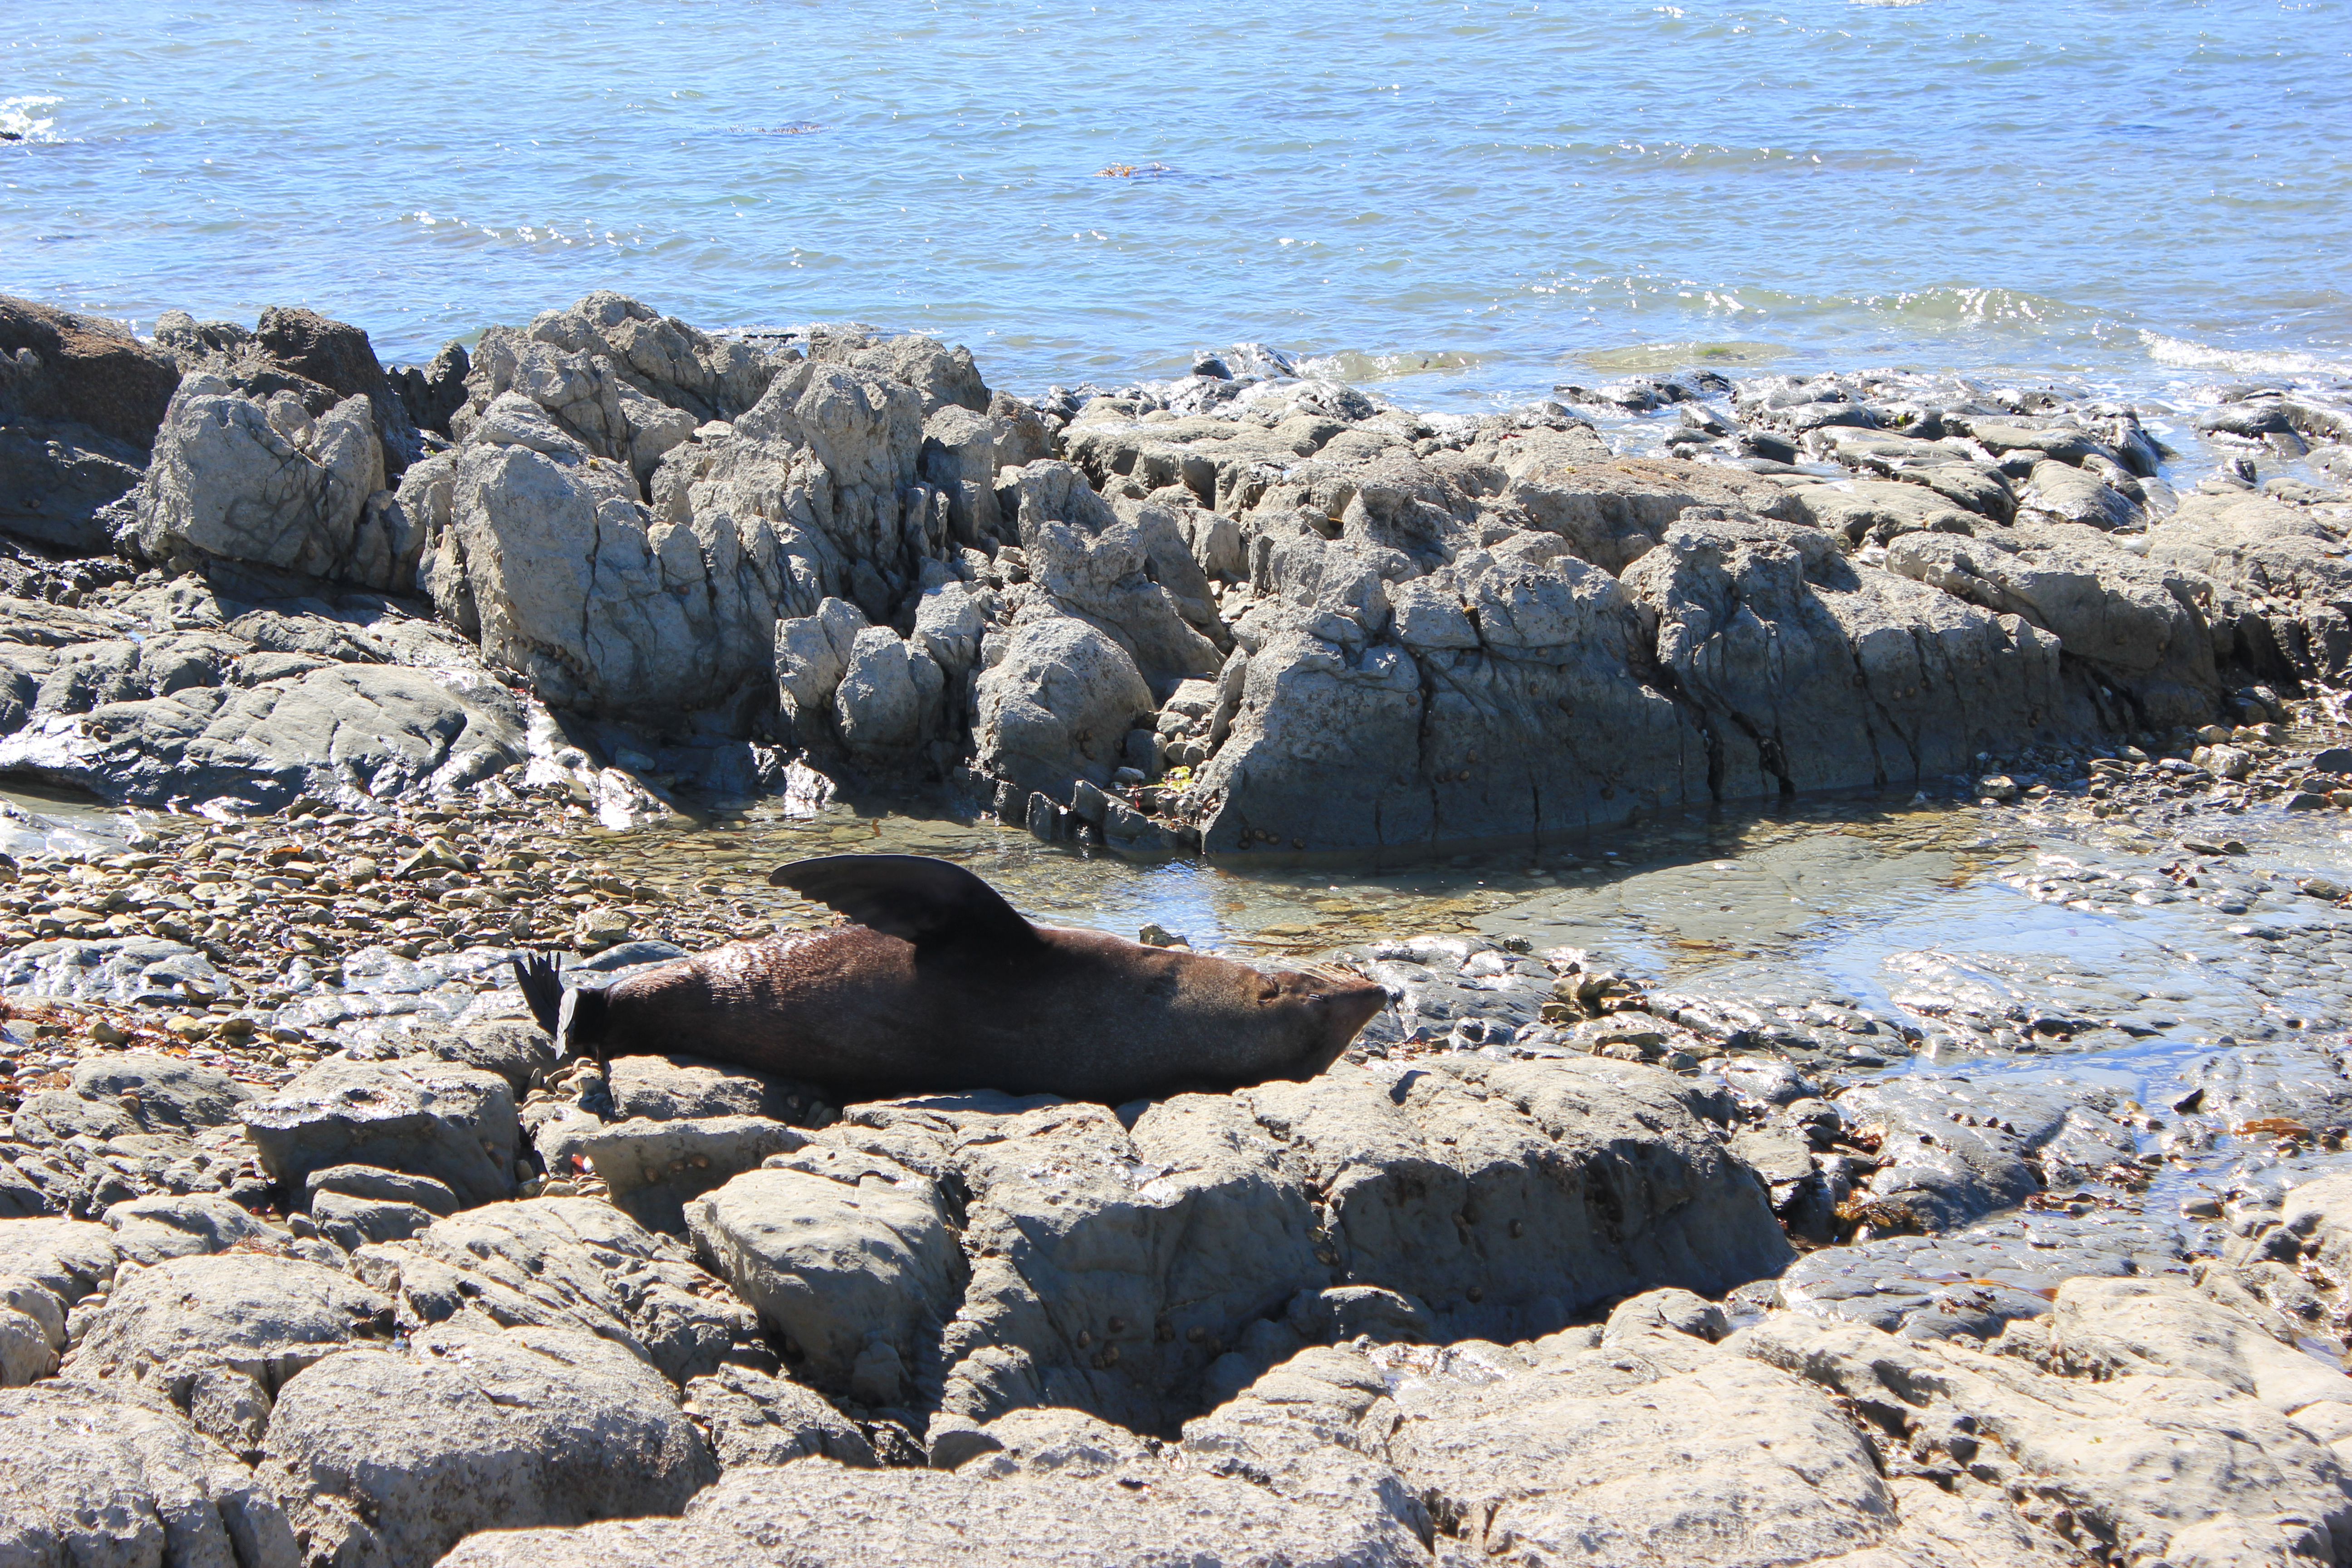 Sleeping Seal, Kaikoura